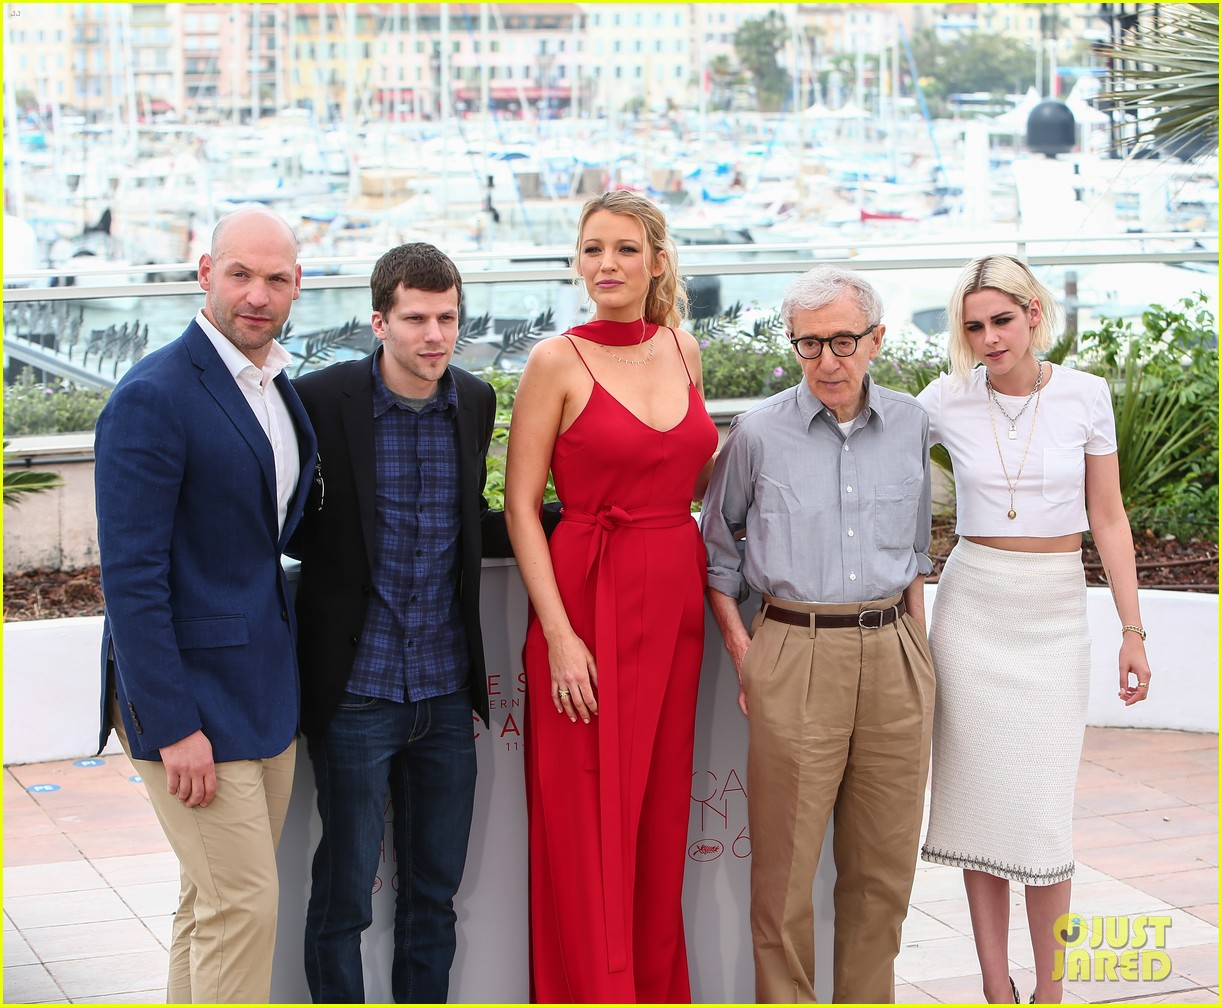 http://cdn02.cdn.justjared.com/wp-content/uploads/2016/05/stewart-csocietycff/kristen-stewart-blake-lively-kick-off-cannes-fest-at-cafe-society-04.jpg